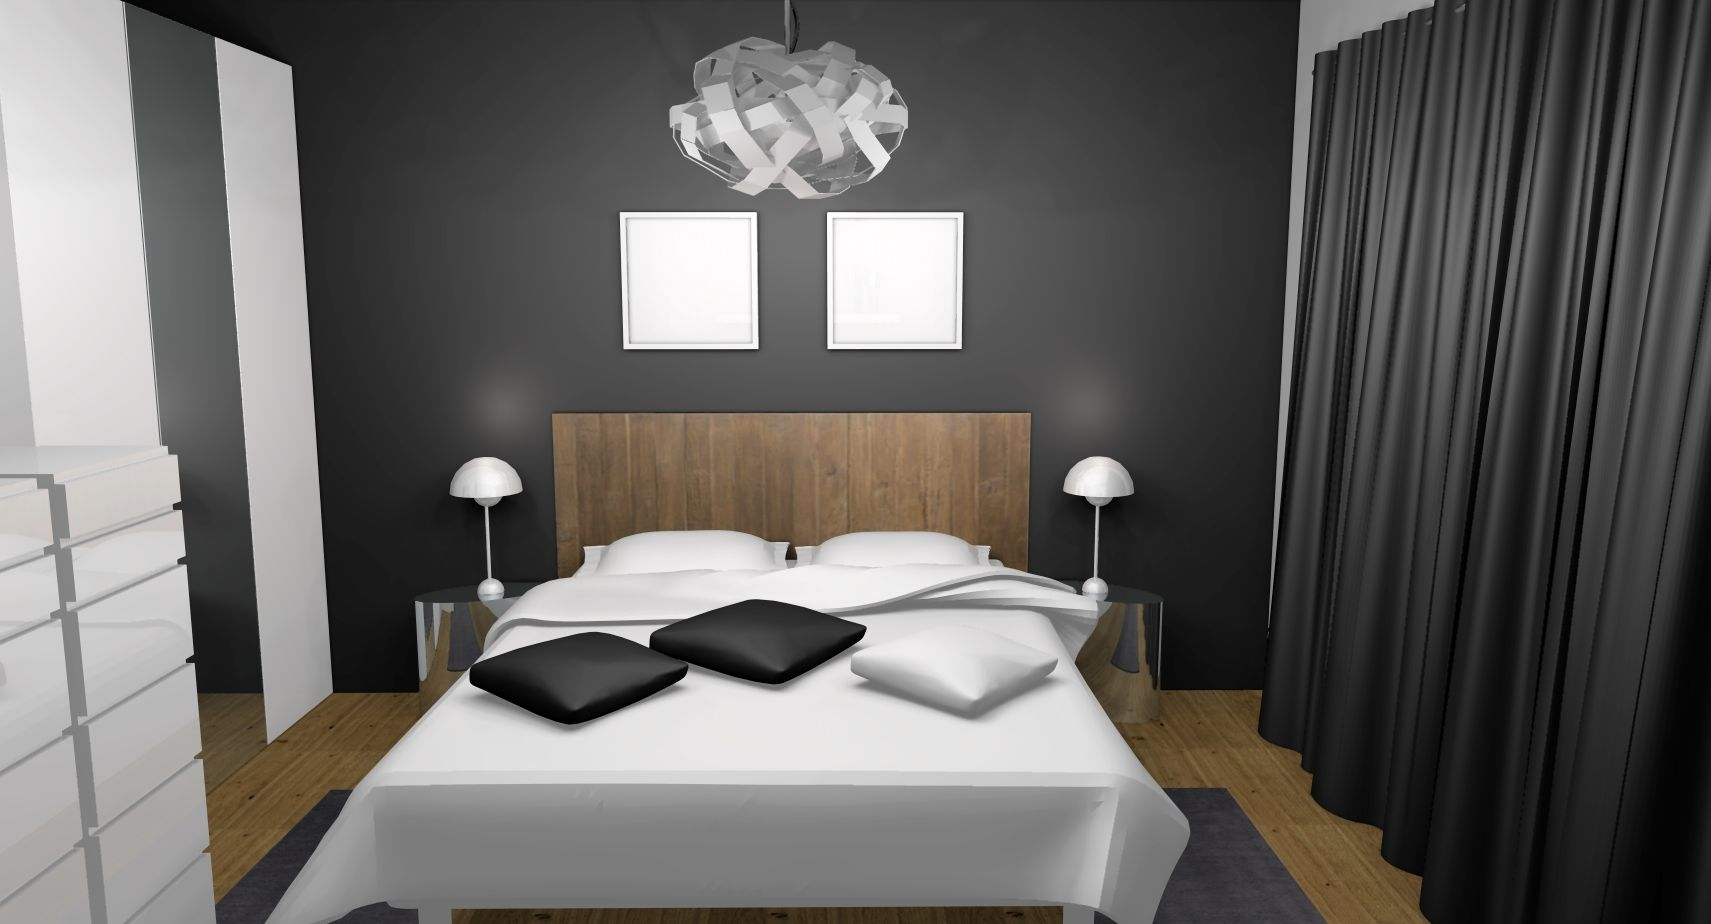 D co interieur chambre adulte for Idee chambre a coucher adulte